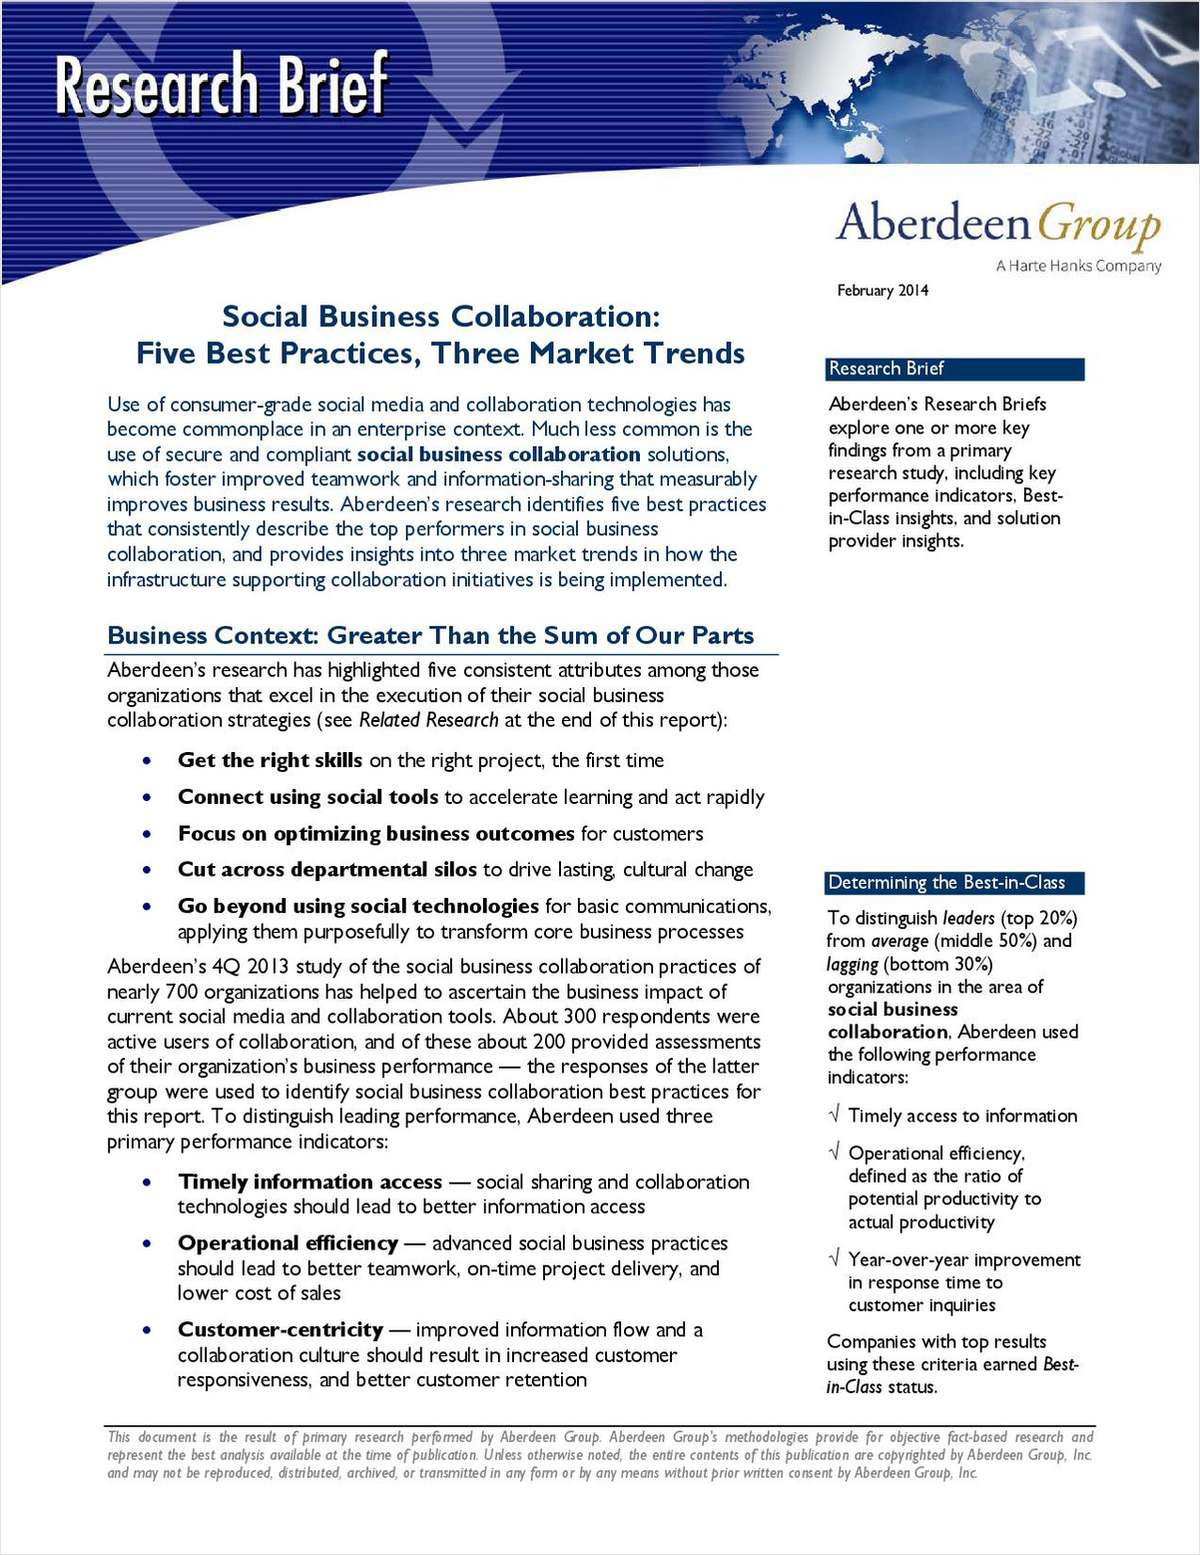 Social Business Collaboration: Five Best Practices, Three Market Trends